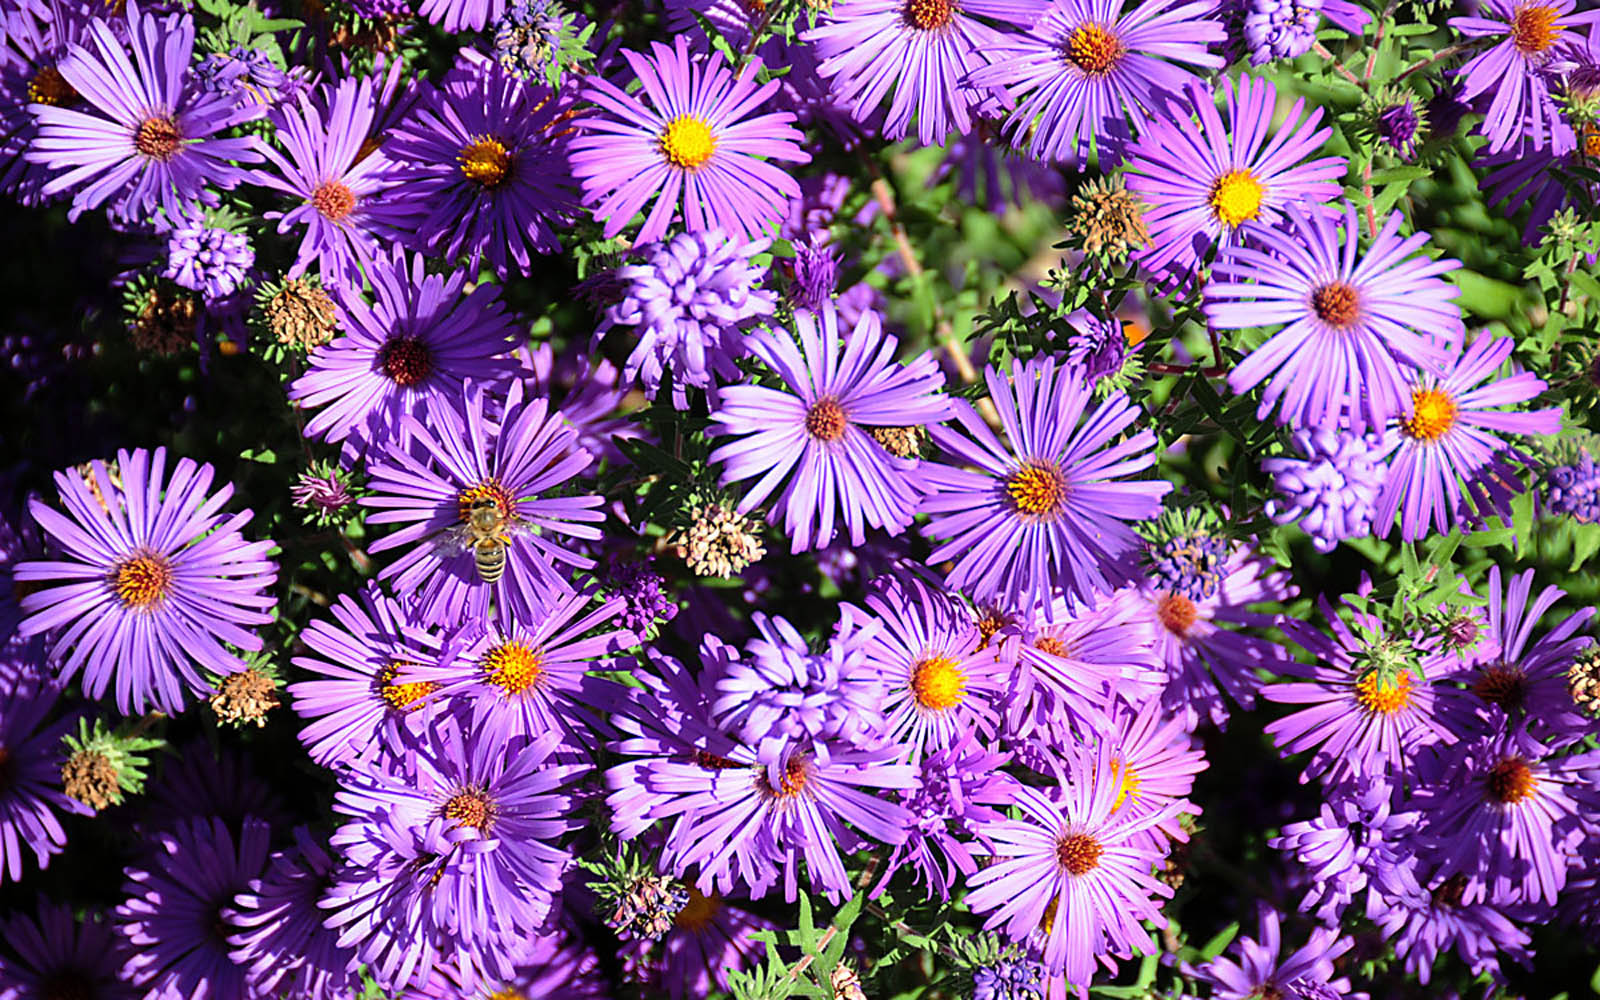 Tag: Aster Flowers Wallpapers, Backgrounds, Photos, Images and ... Flowers